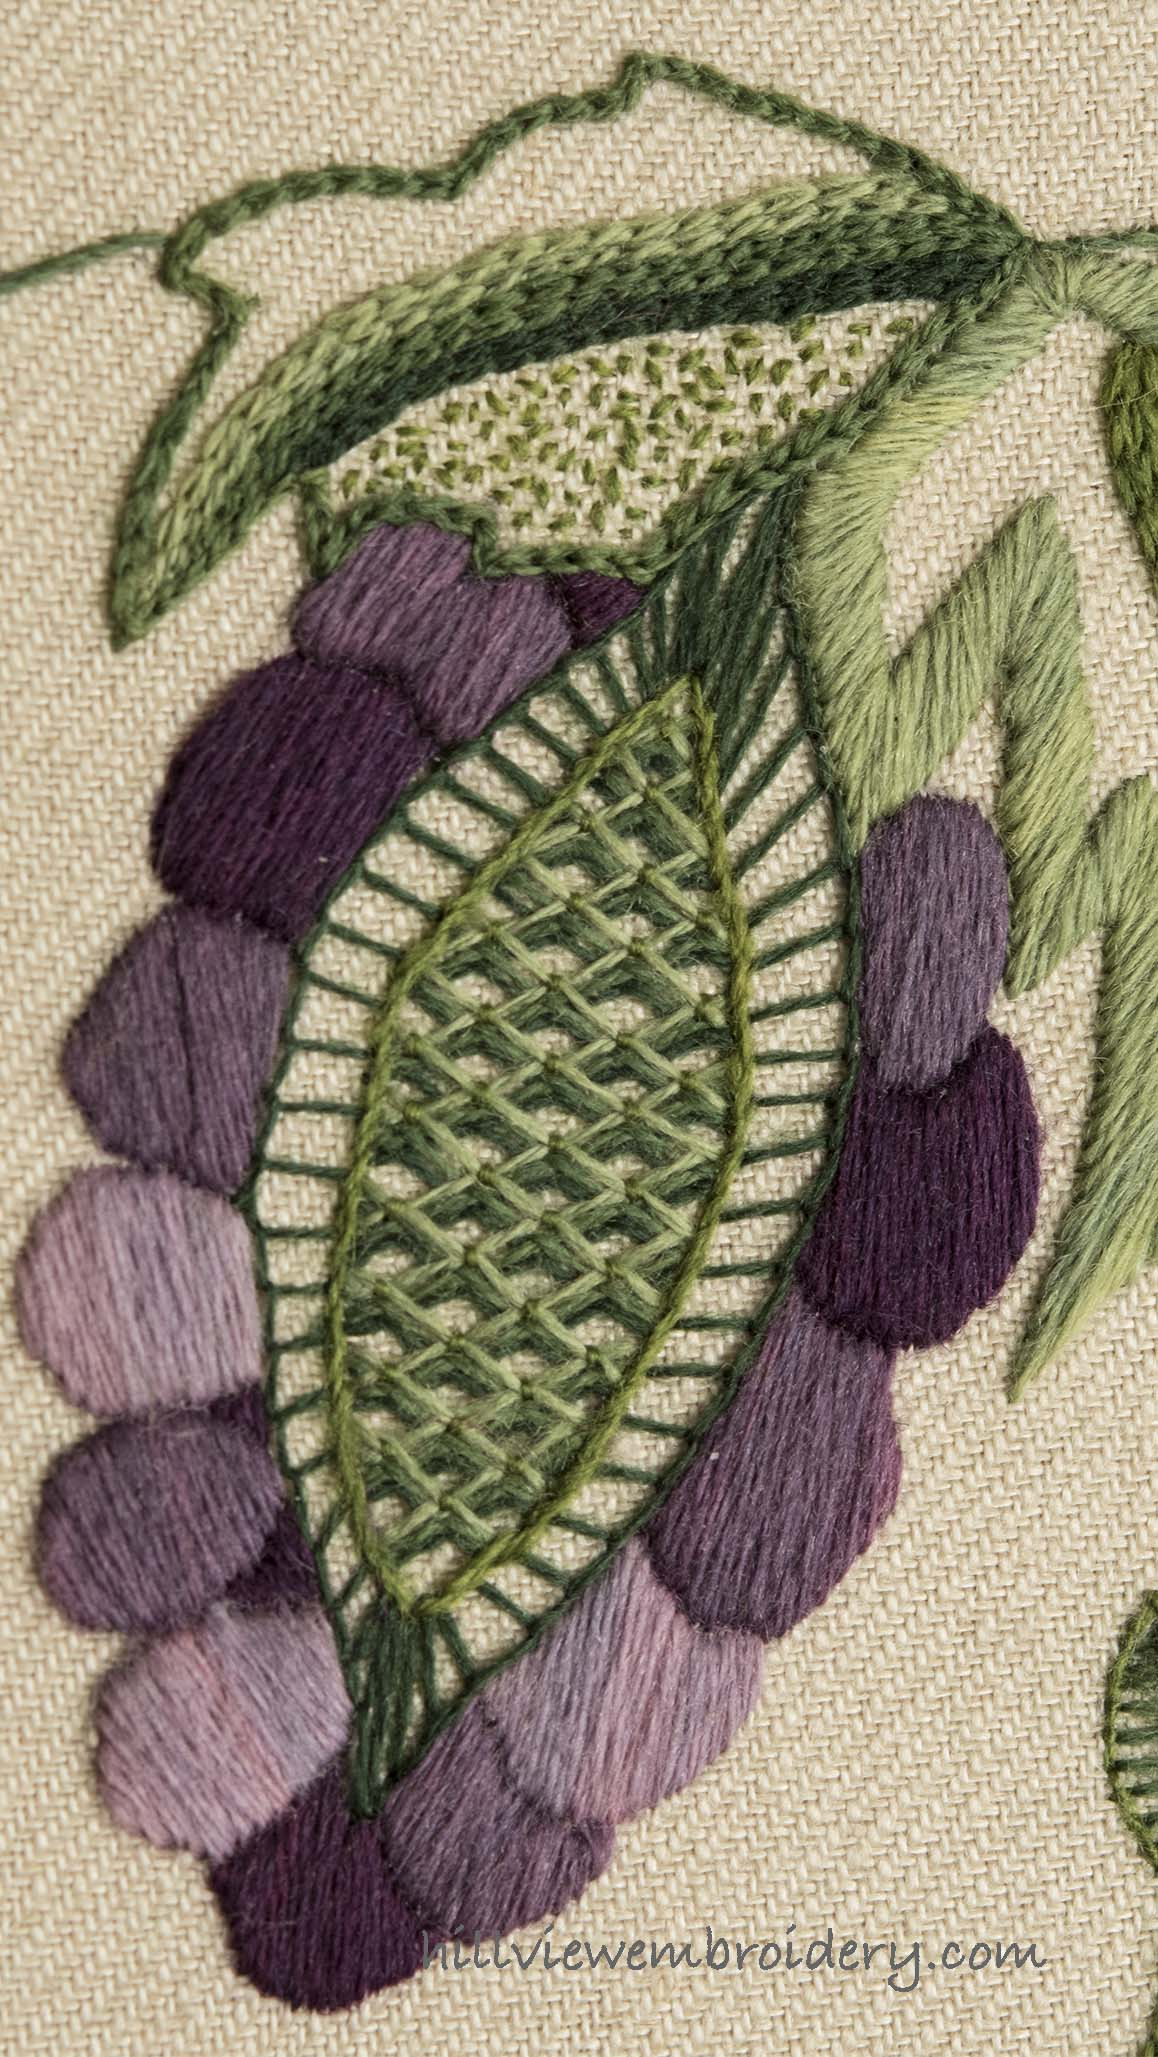 Grapes on this crewelwork piece are enhanced by beautiful colour choices